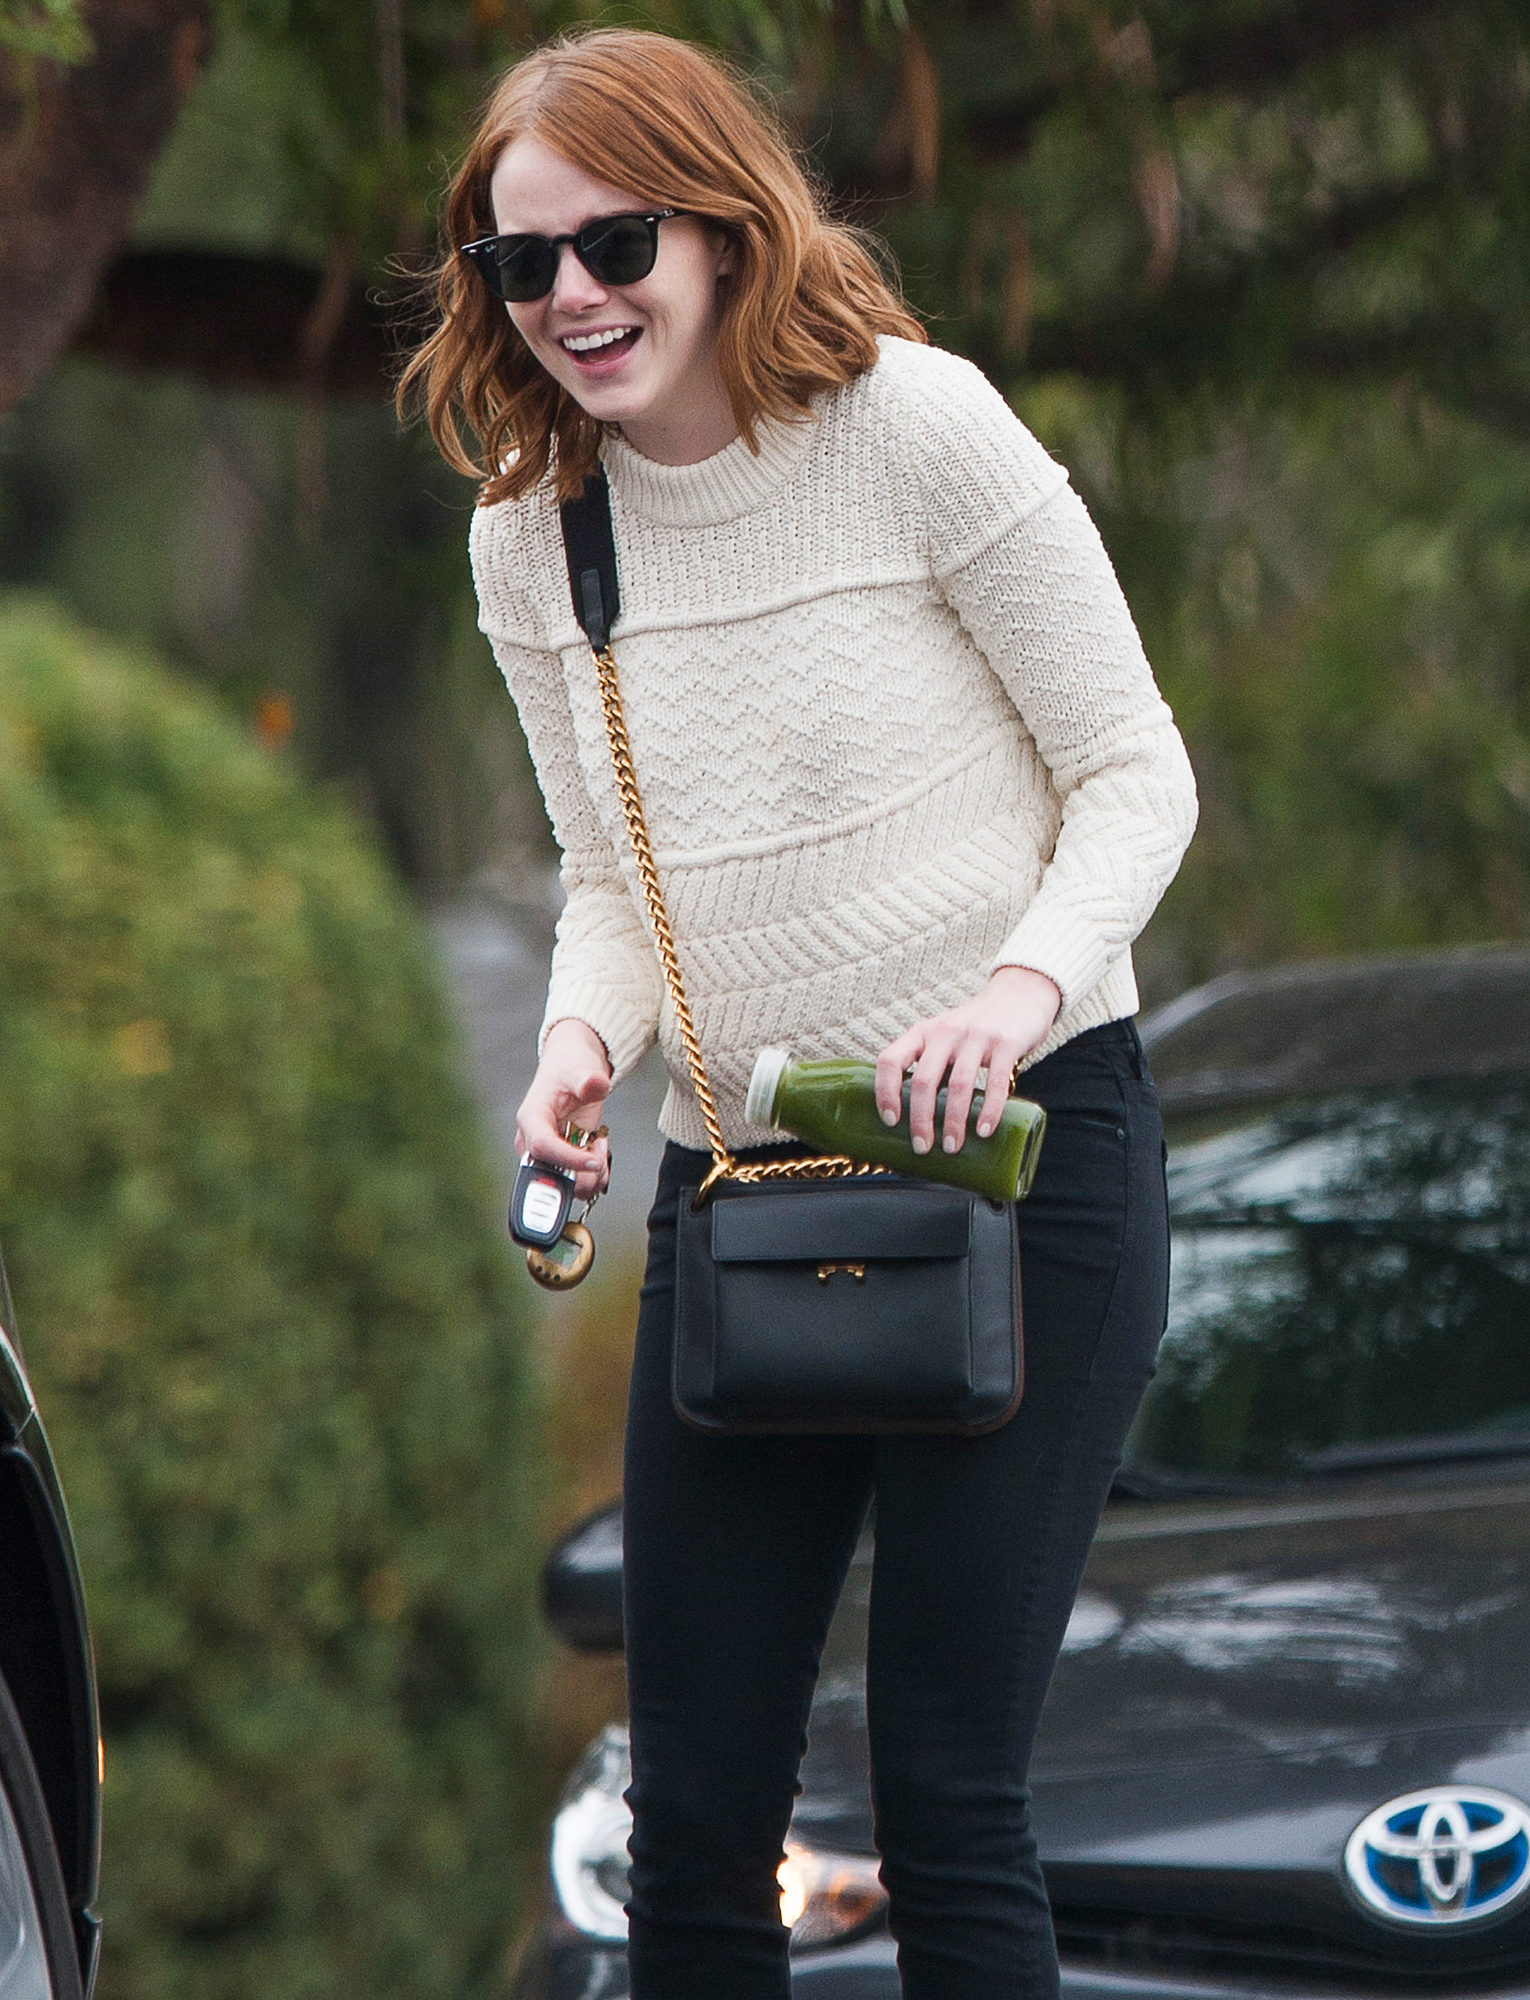 EXCLUSIVE: Emma Stone Smiles Broadly and has a Laugh Out Loud Moment in LA